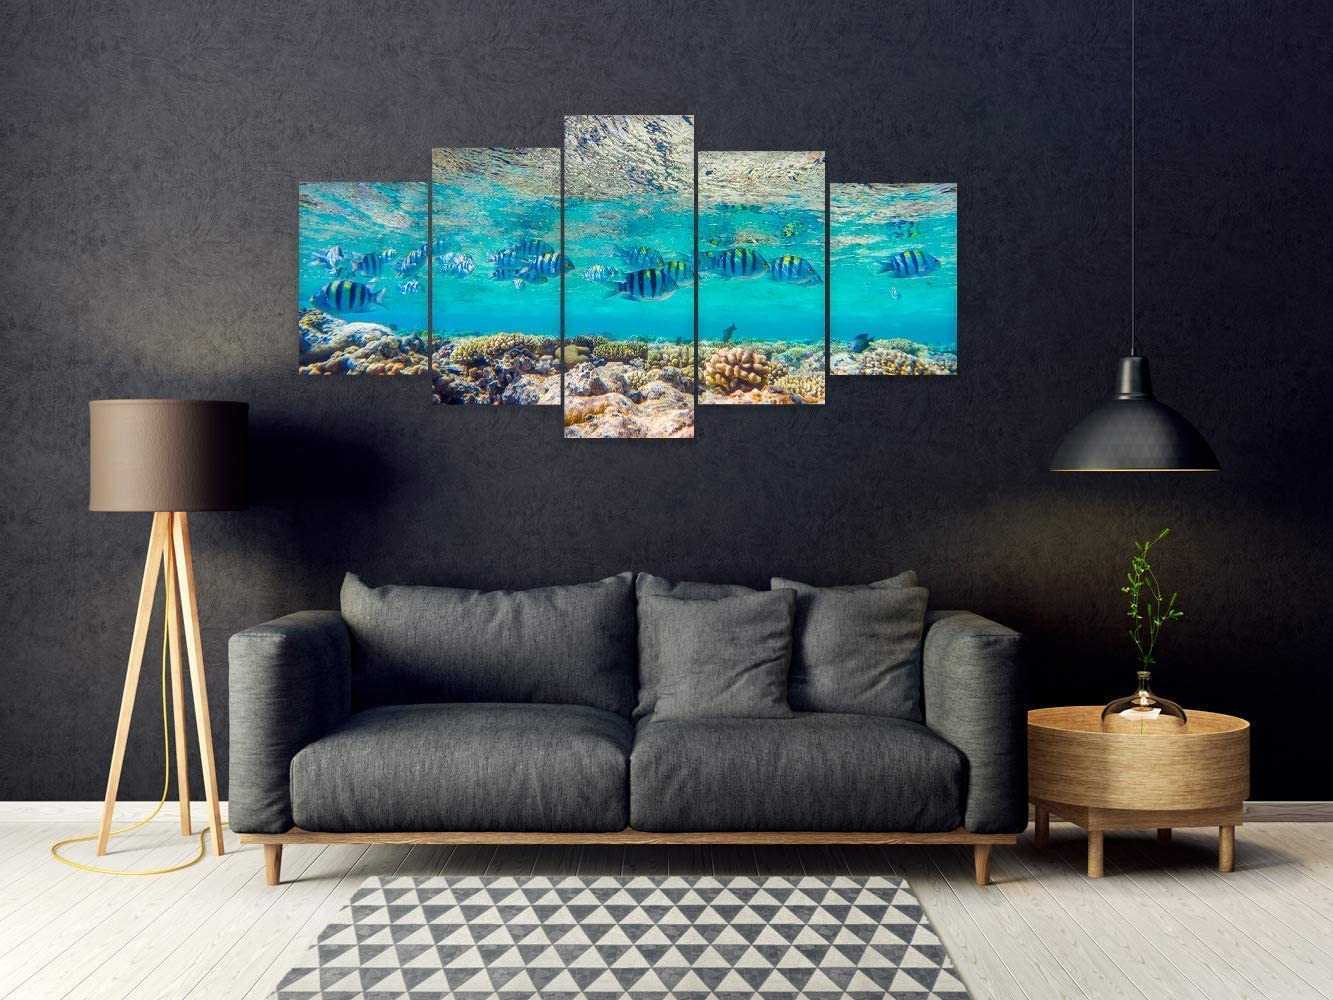 Oedim Pack Of 5 Paintings In White Aluminium And Pvc Fish Various Sizes Set Of Pieces Home Decoration Decorative Items For Rooms 200 X 100 Cm Amazon Co Uk Kitchen Home